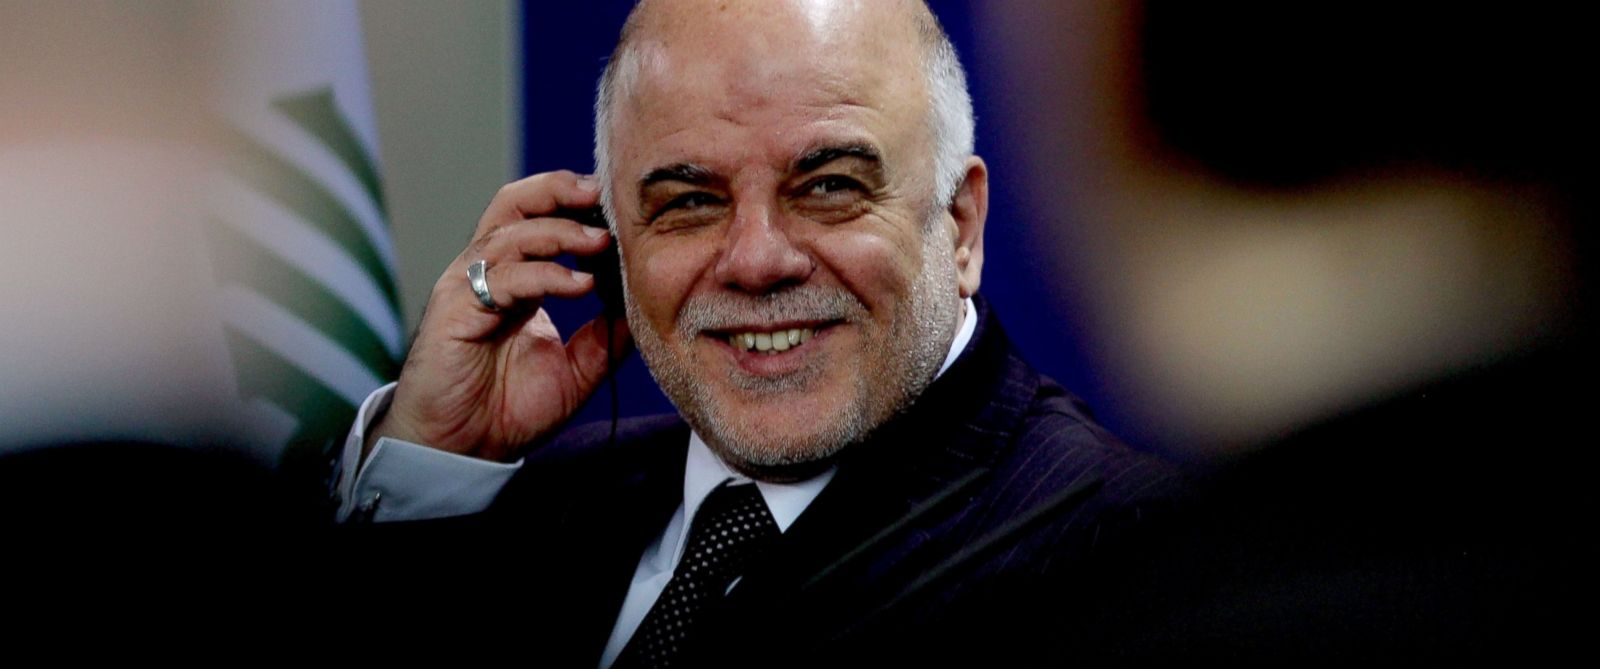 PHOTO: Iraqi Prime Minister Haider al-Abadi is seen during a joint press conference with German Chancellor Angela Merkel at the Chancellery following their talks in Berlin, Germany on Feb. 6, 2015.